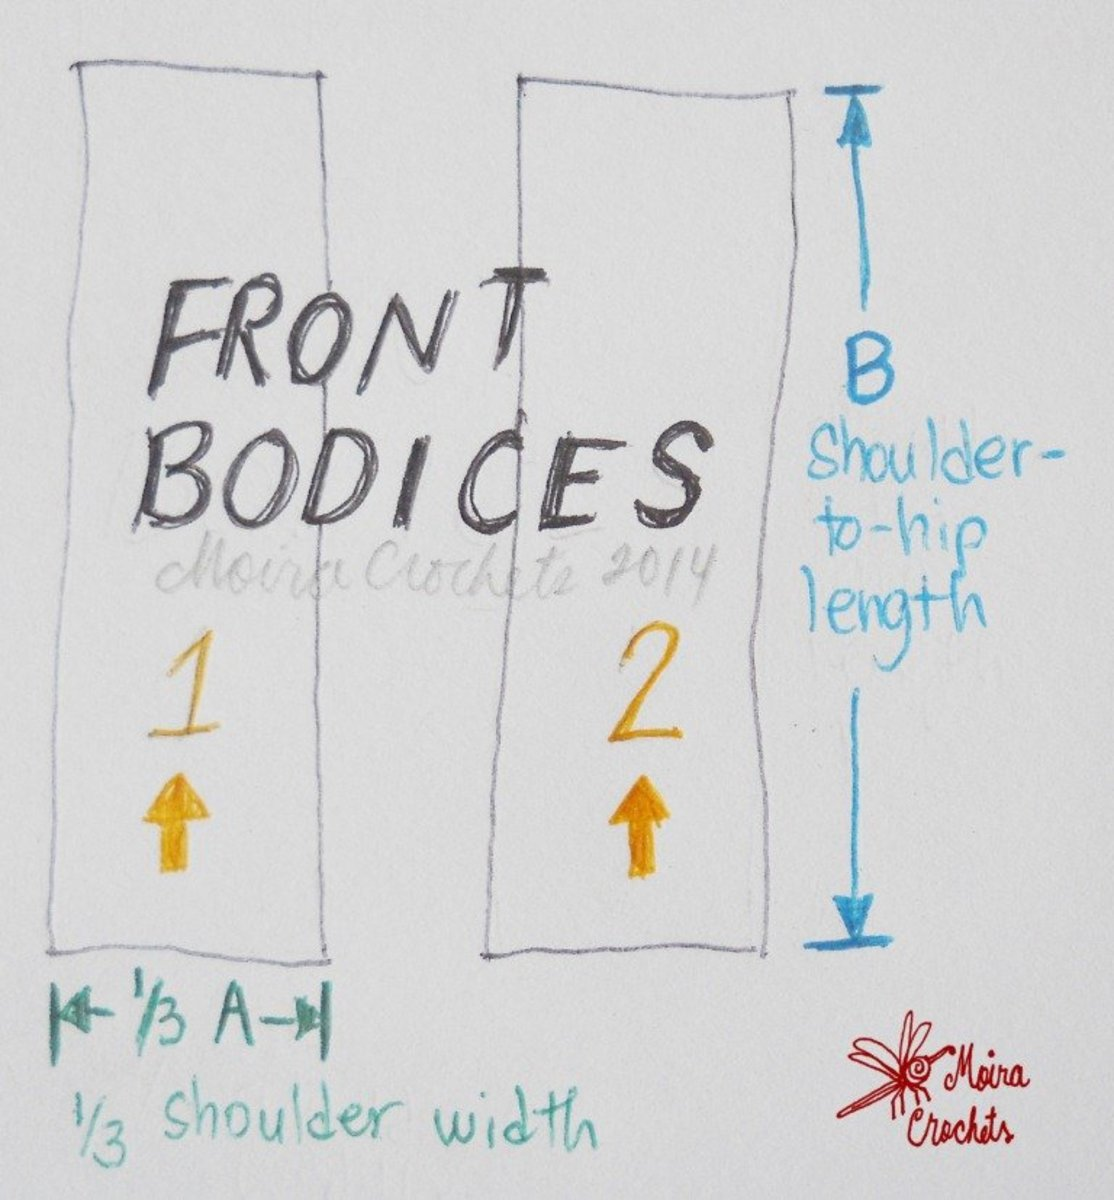 Length and width of front bodice - it's just a rectangle